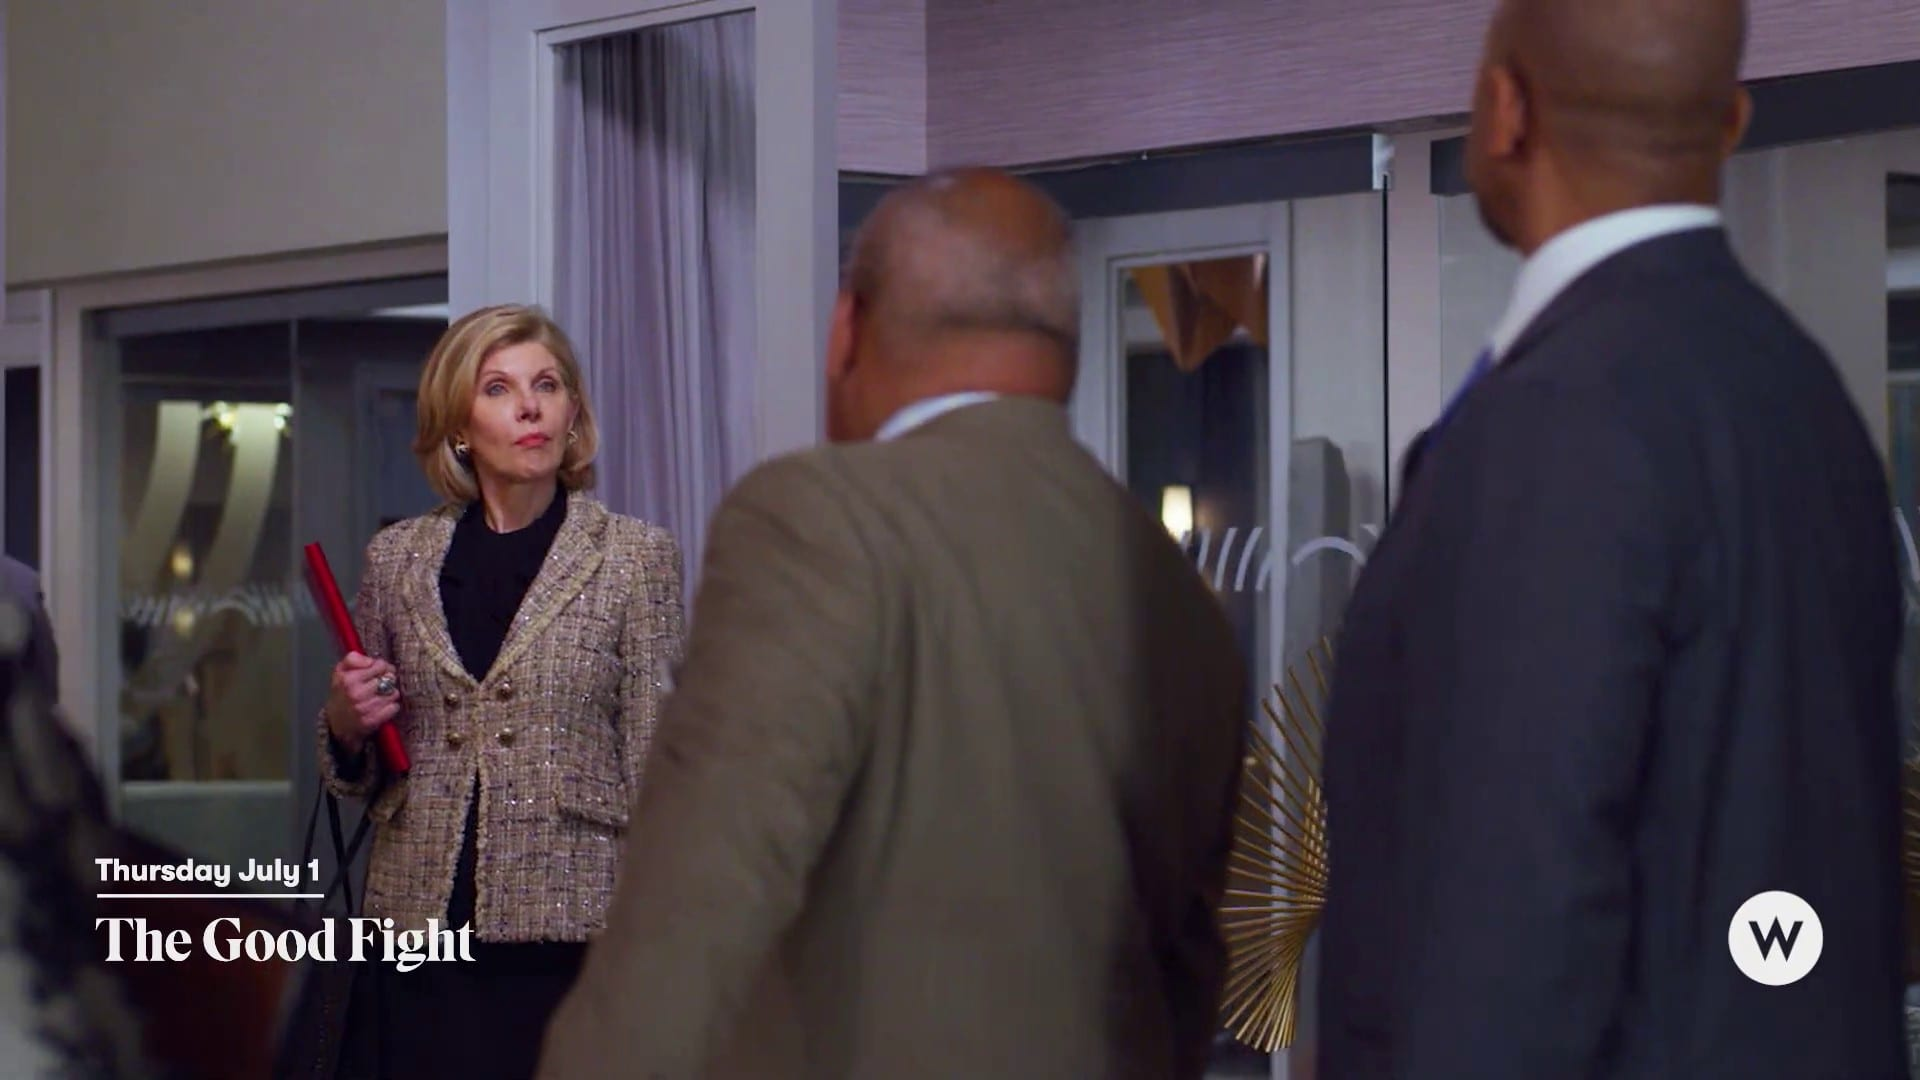 Release Date For The Good Fight Season 5 In The UK